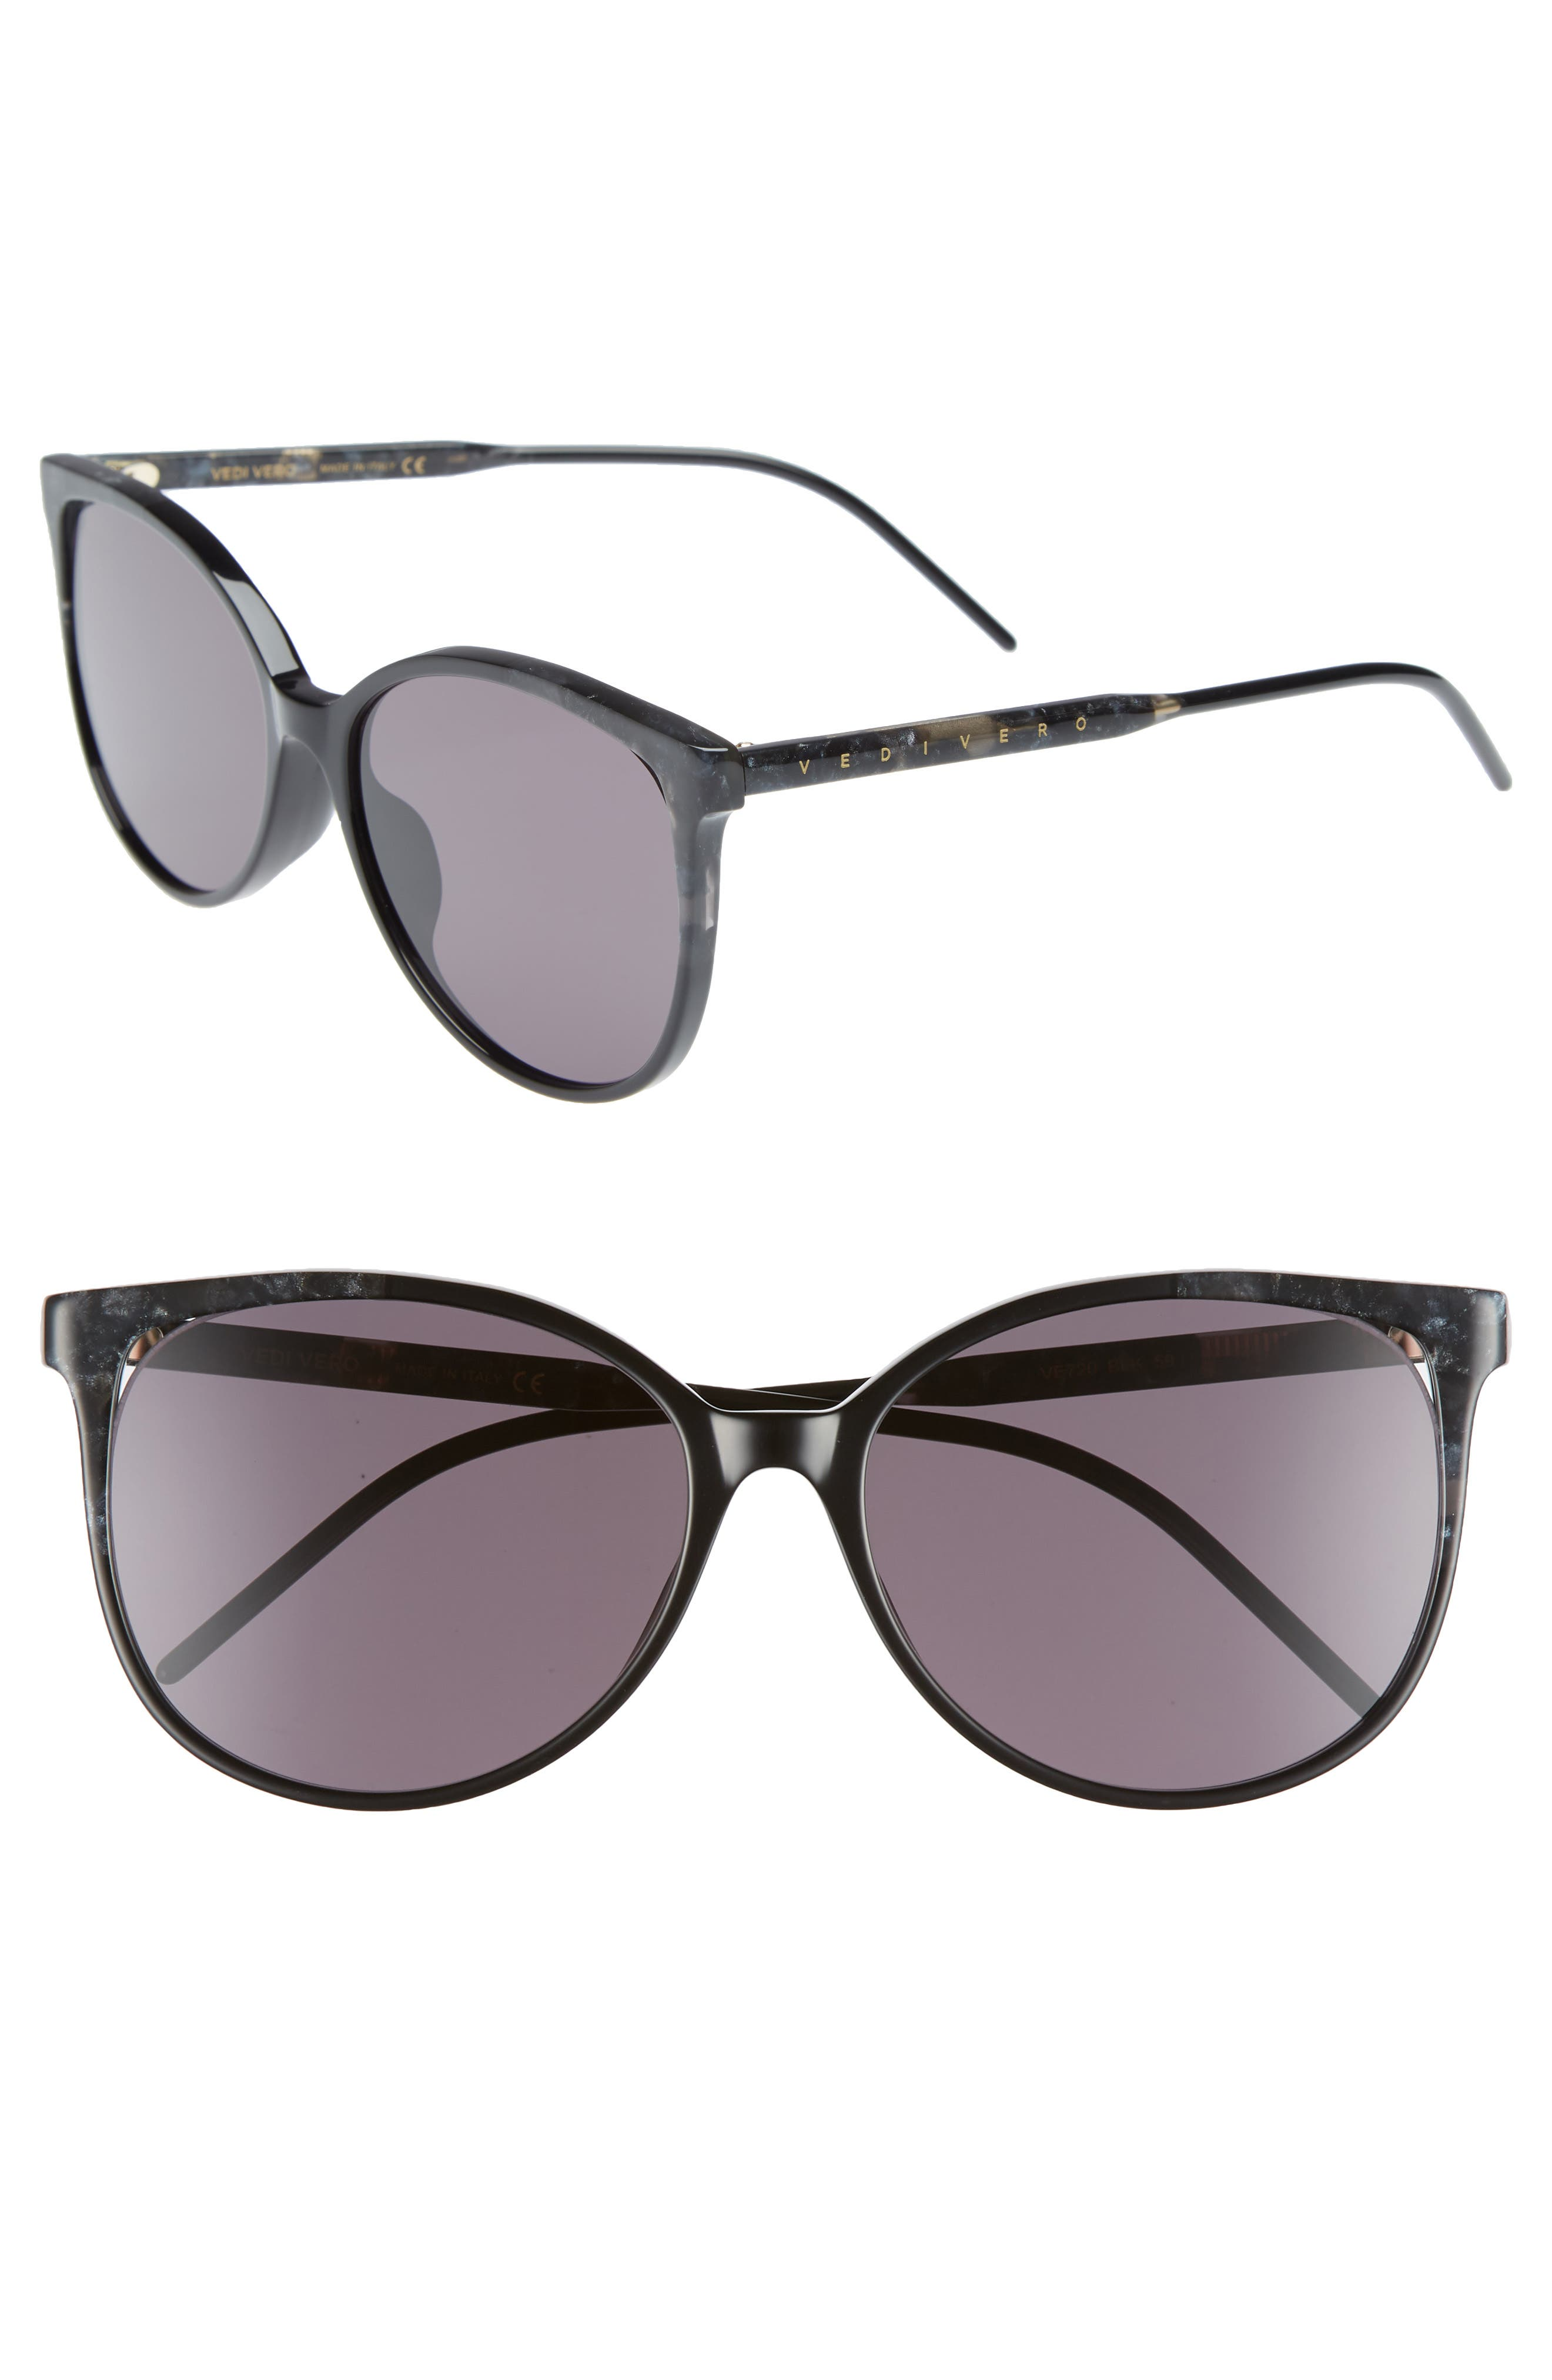 59mm Round Sunglasses,                         Main,                         color, Black/Brown